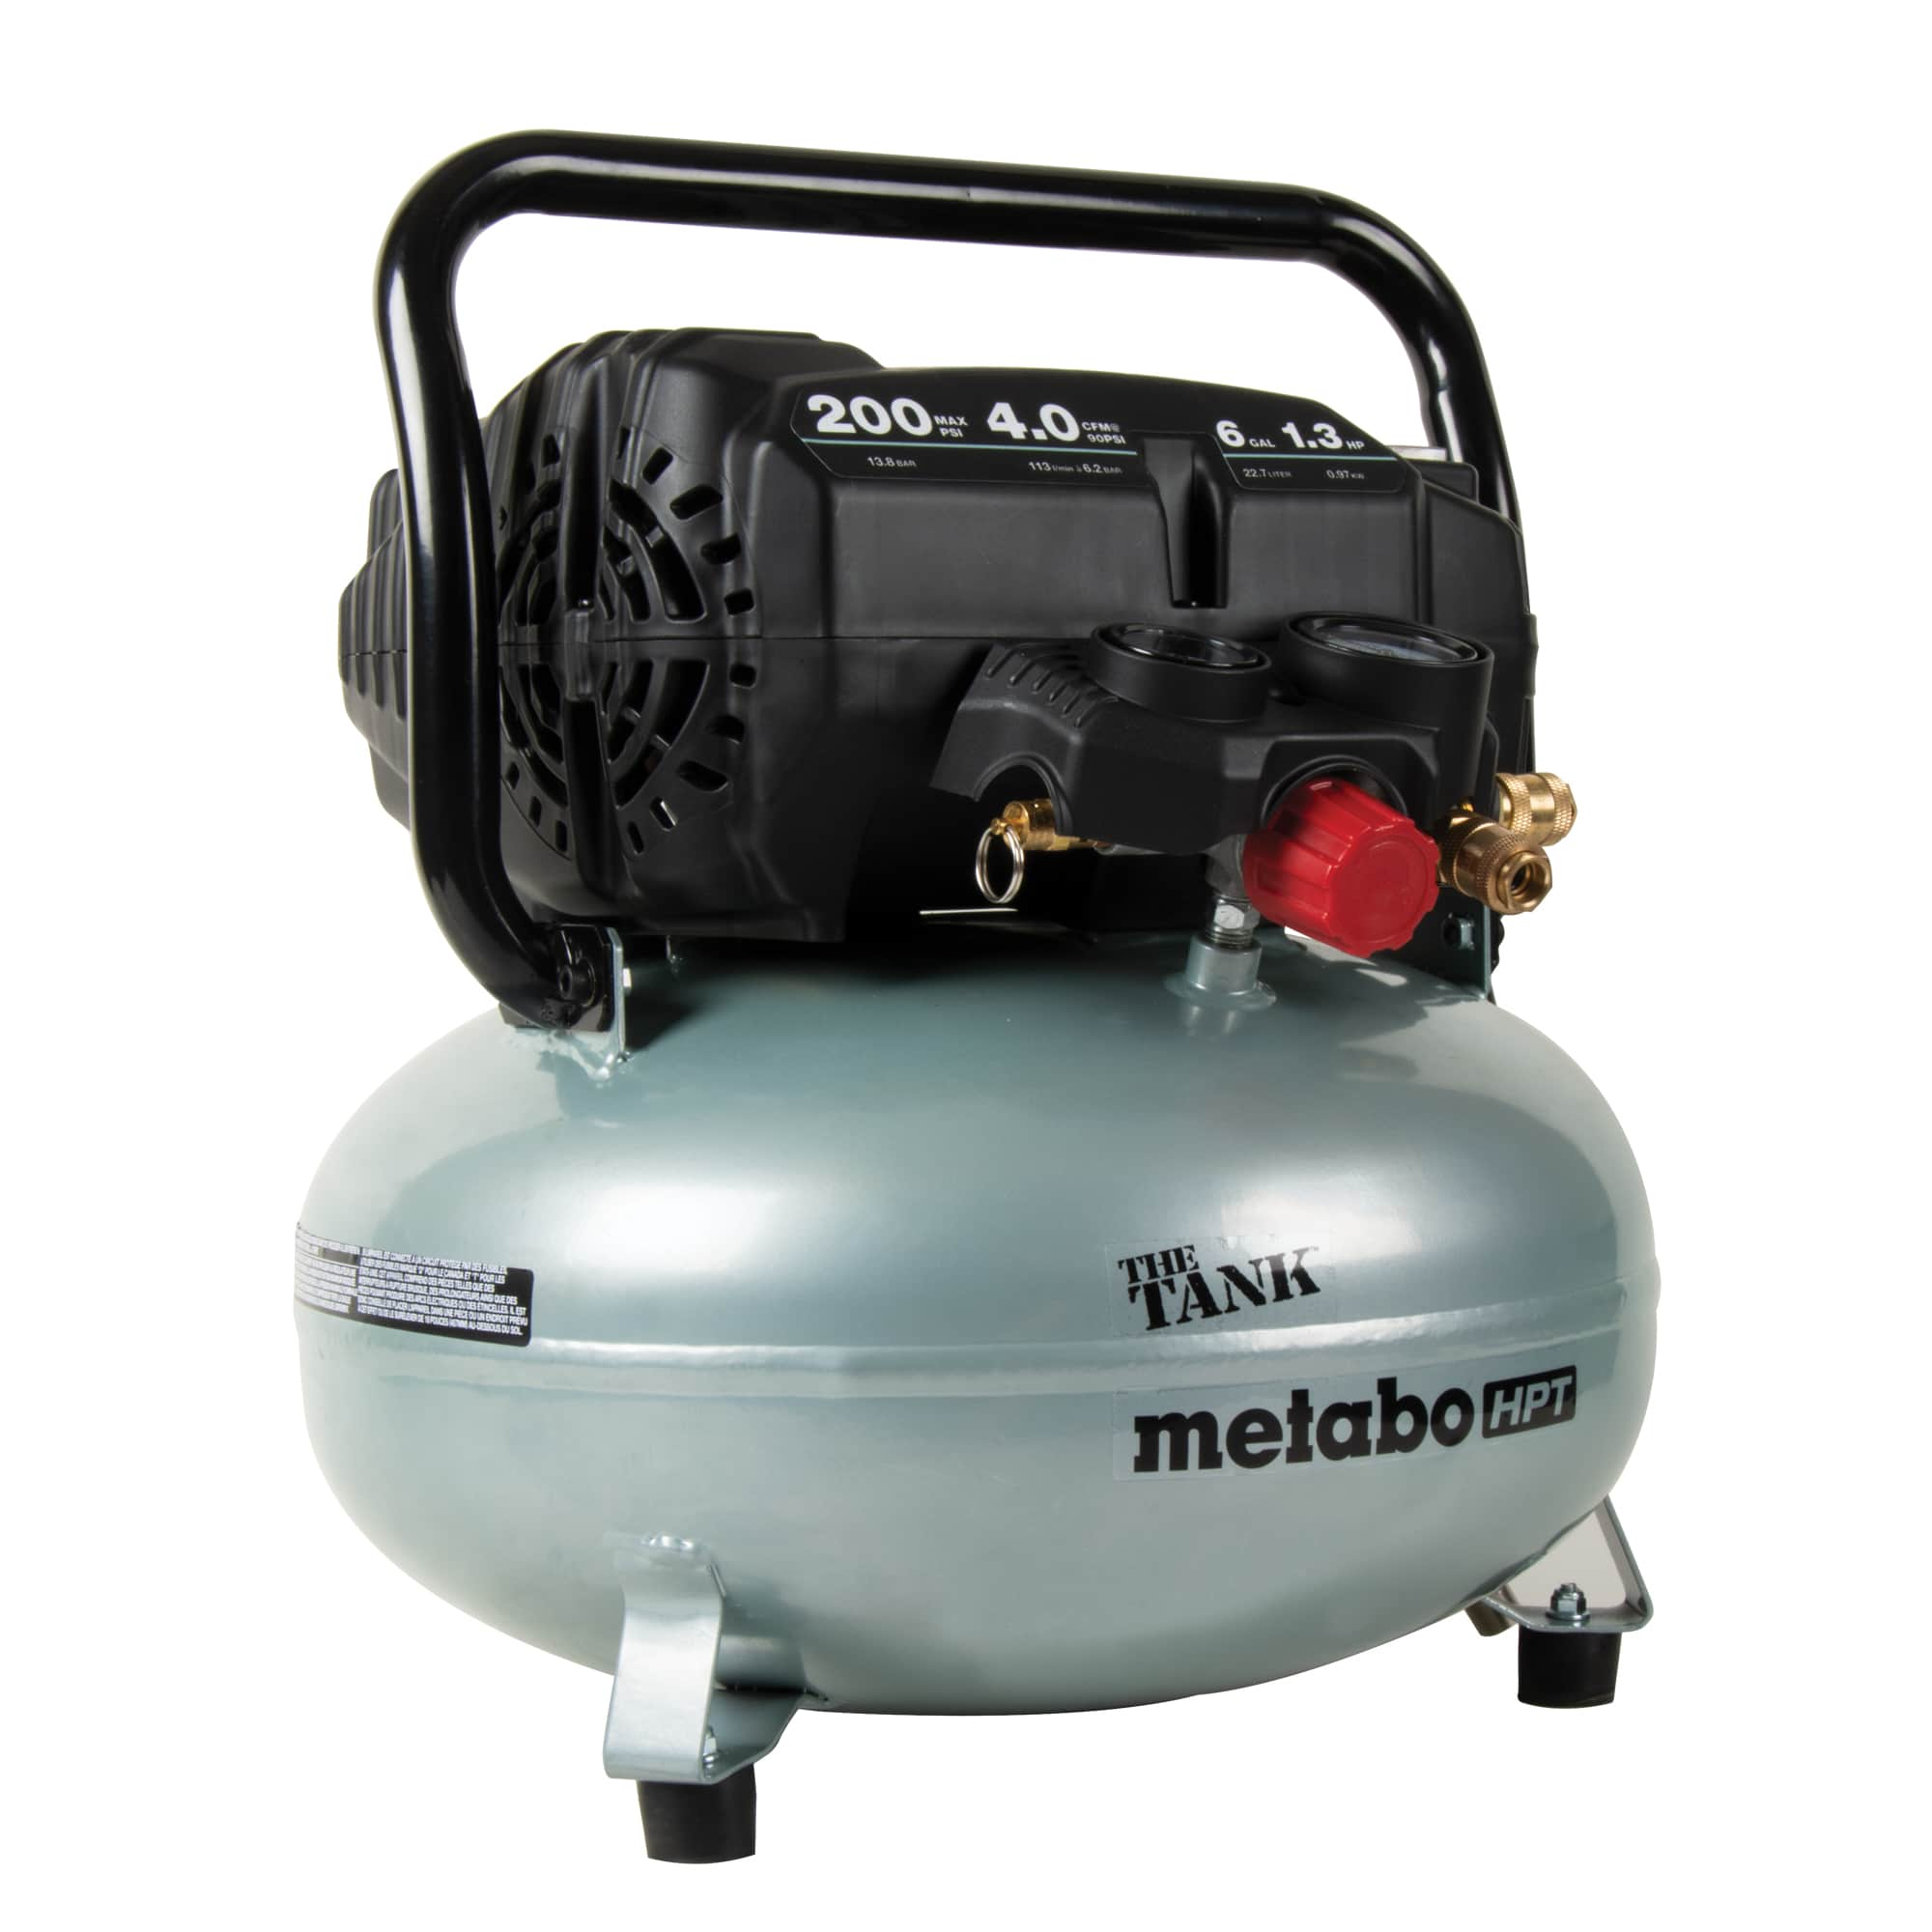 Metabo HPT today announced The Tank™ - the industry's first 200 PSI High Capacity Pancake Compressor (model EC914S).